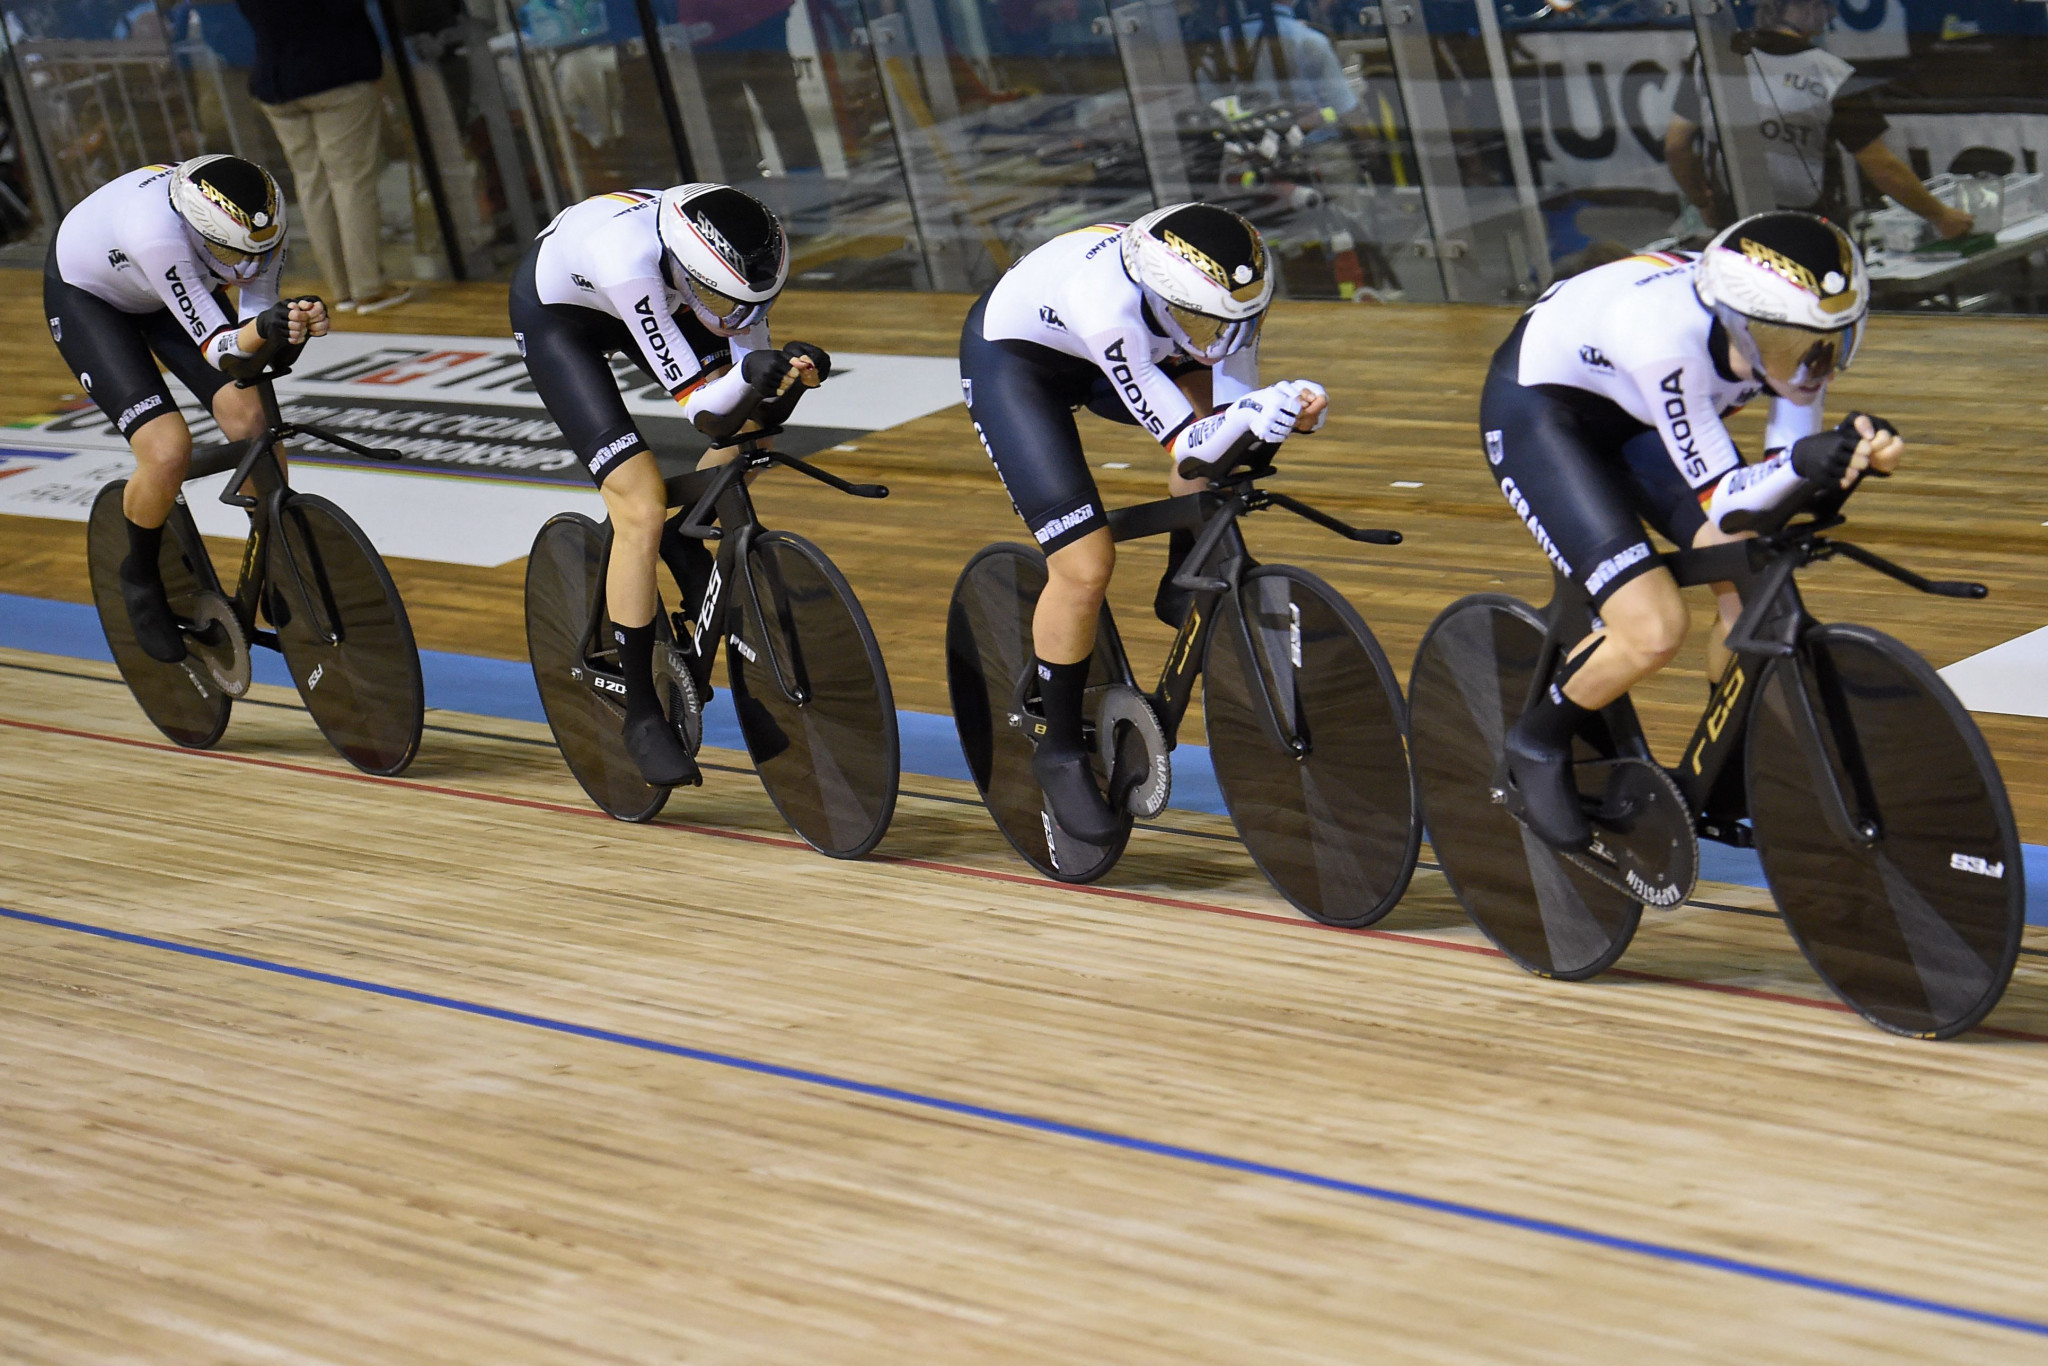 German women's pursuit team win Track Cycling World Championships gold to add to Olympic title